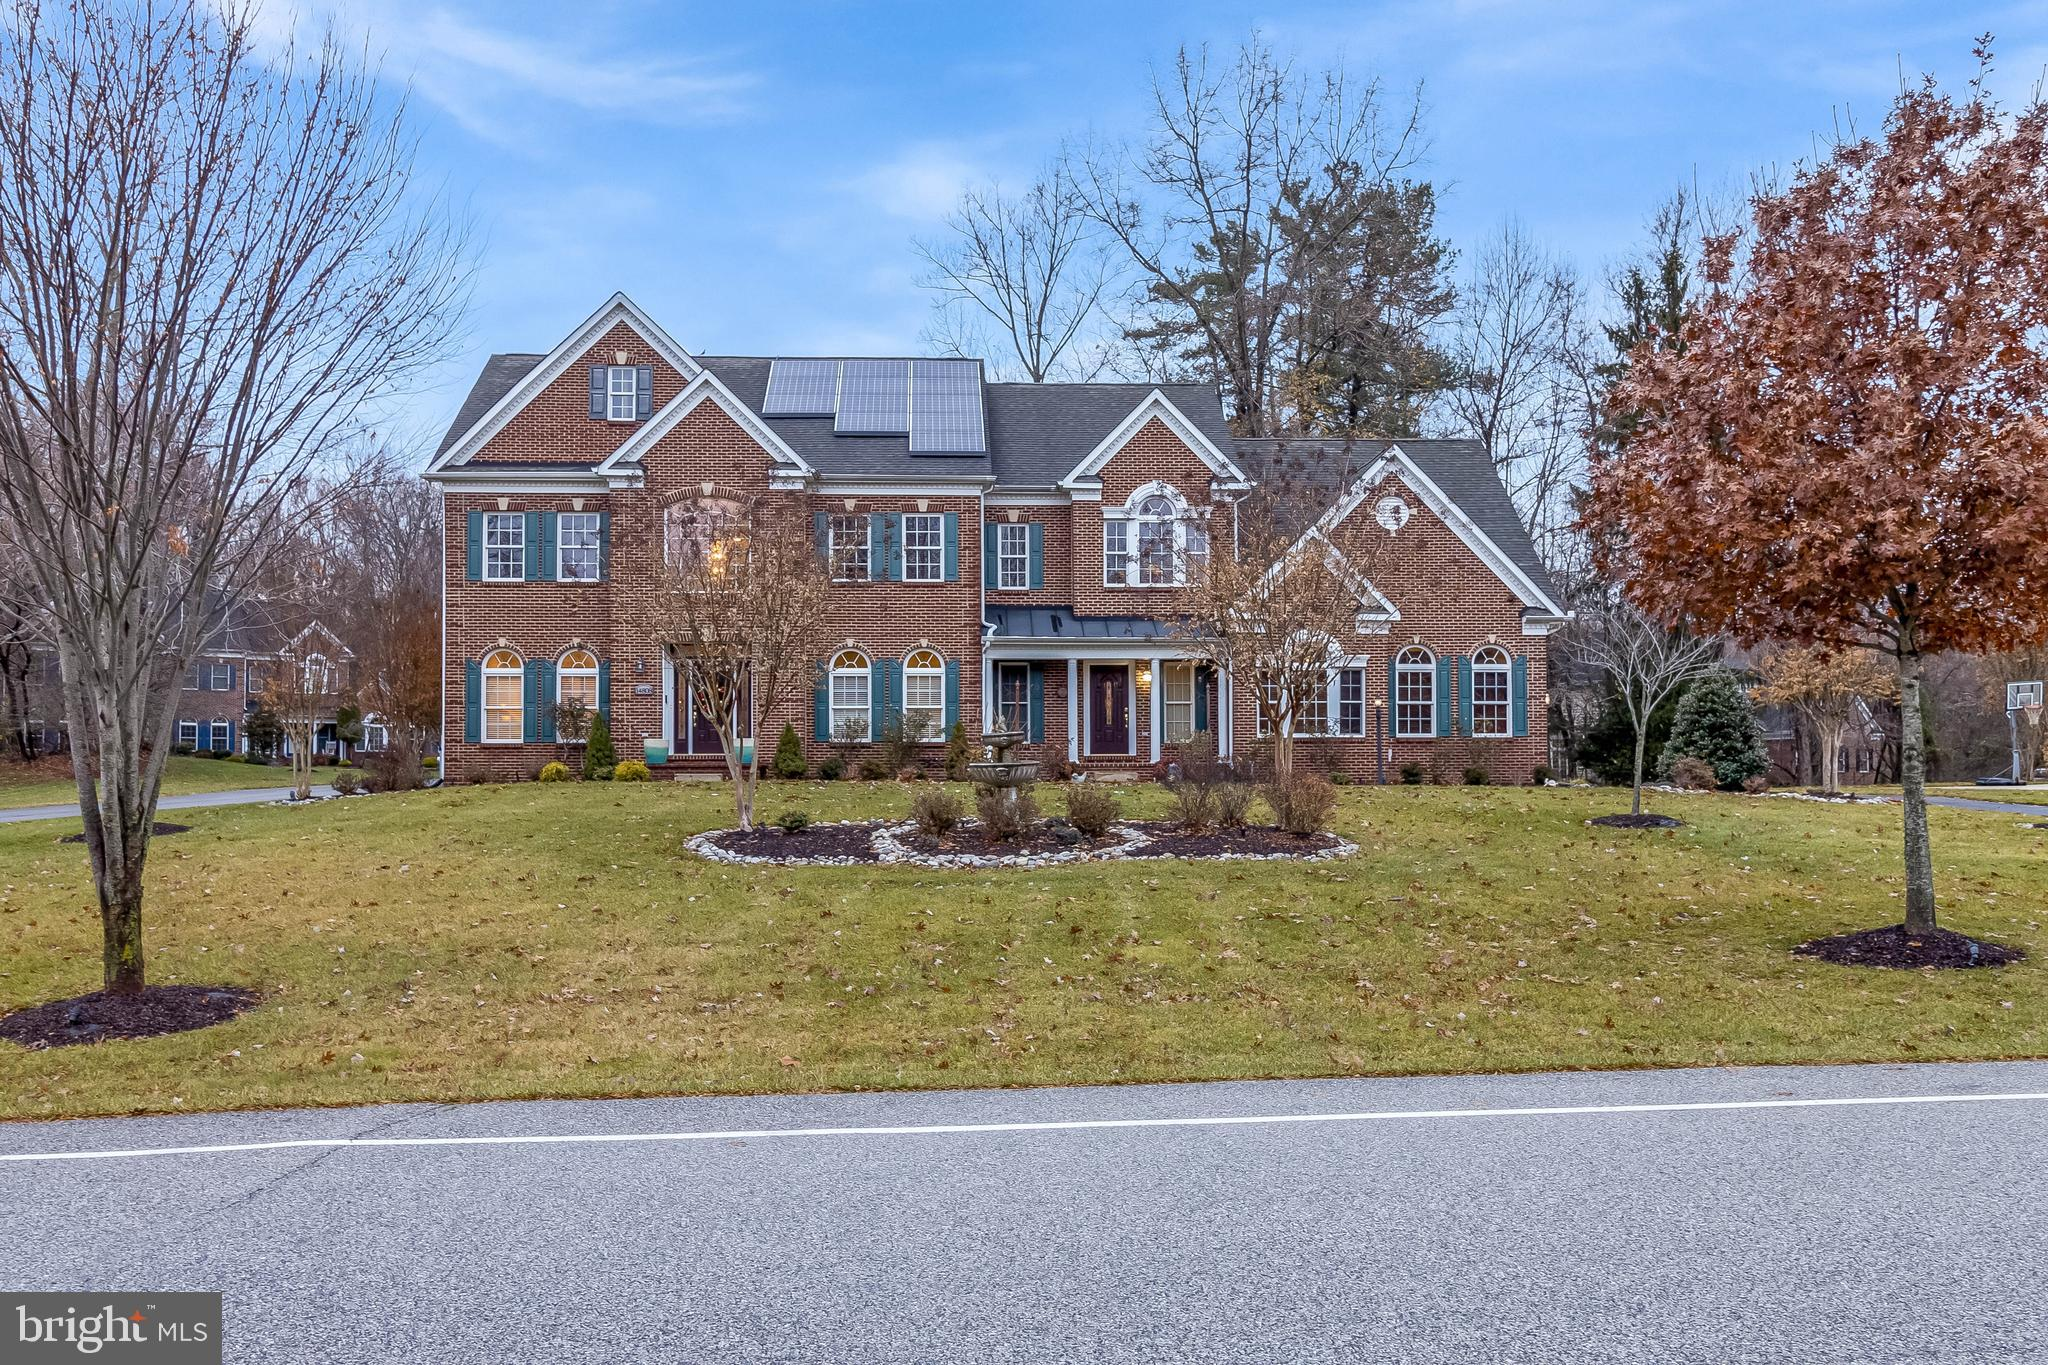 Gorgeous home in sought after Tall Oaks/Woodmore area that shows like a model home.  Pride of owners